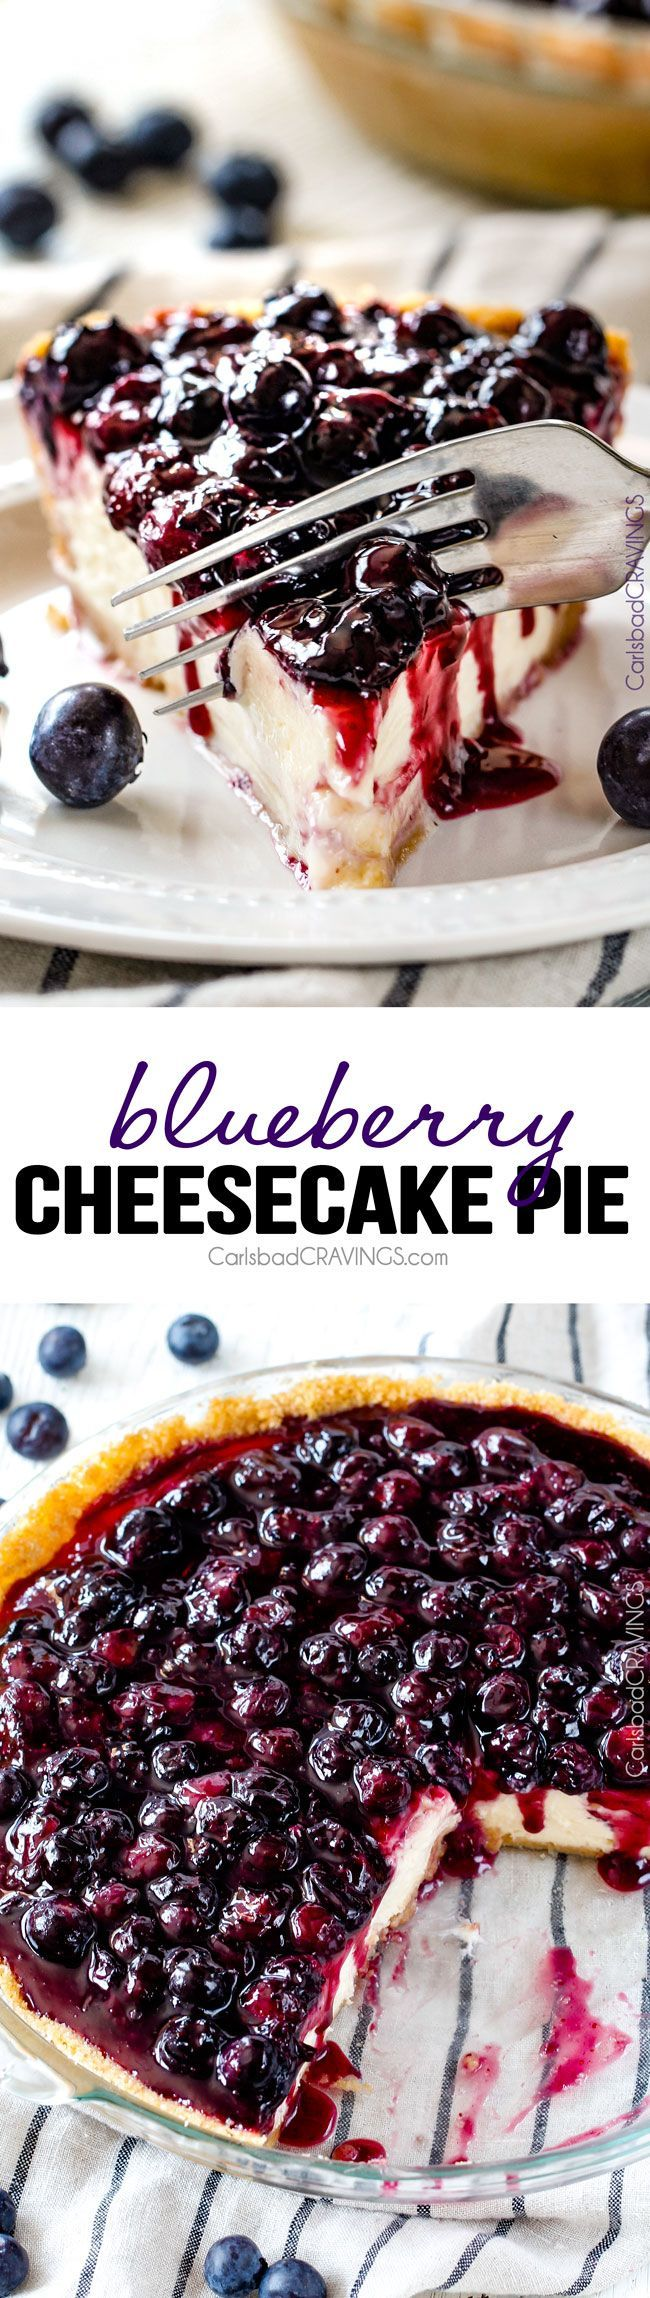 Blueberry Cheesecake Pie - This is my family's favorite summer dessert and its made extra easy in pie form! The cheesecake is creamy, rich and delicious and the homemade blueberry sauce is sweet and tangy and simply the best ever!: